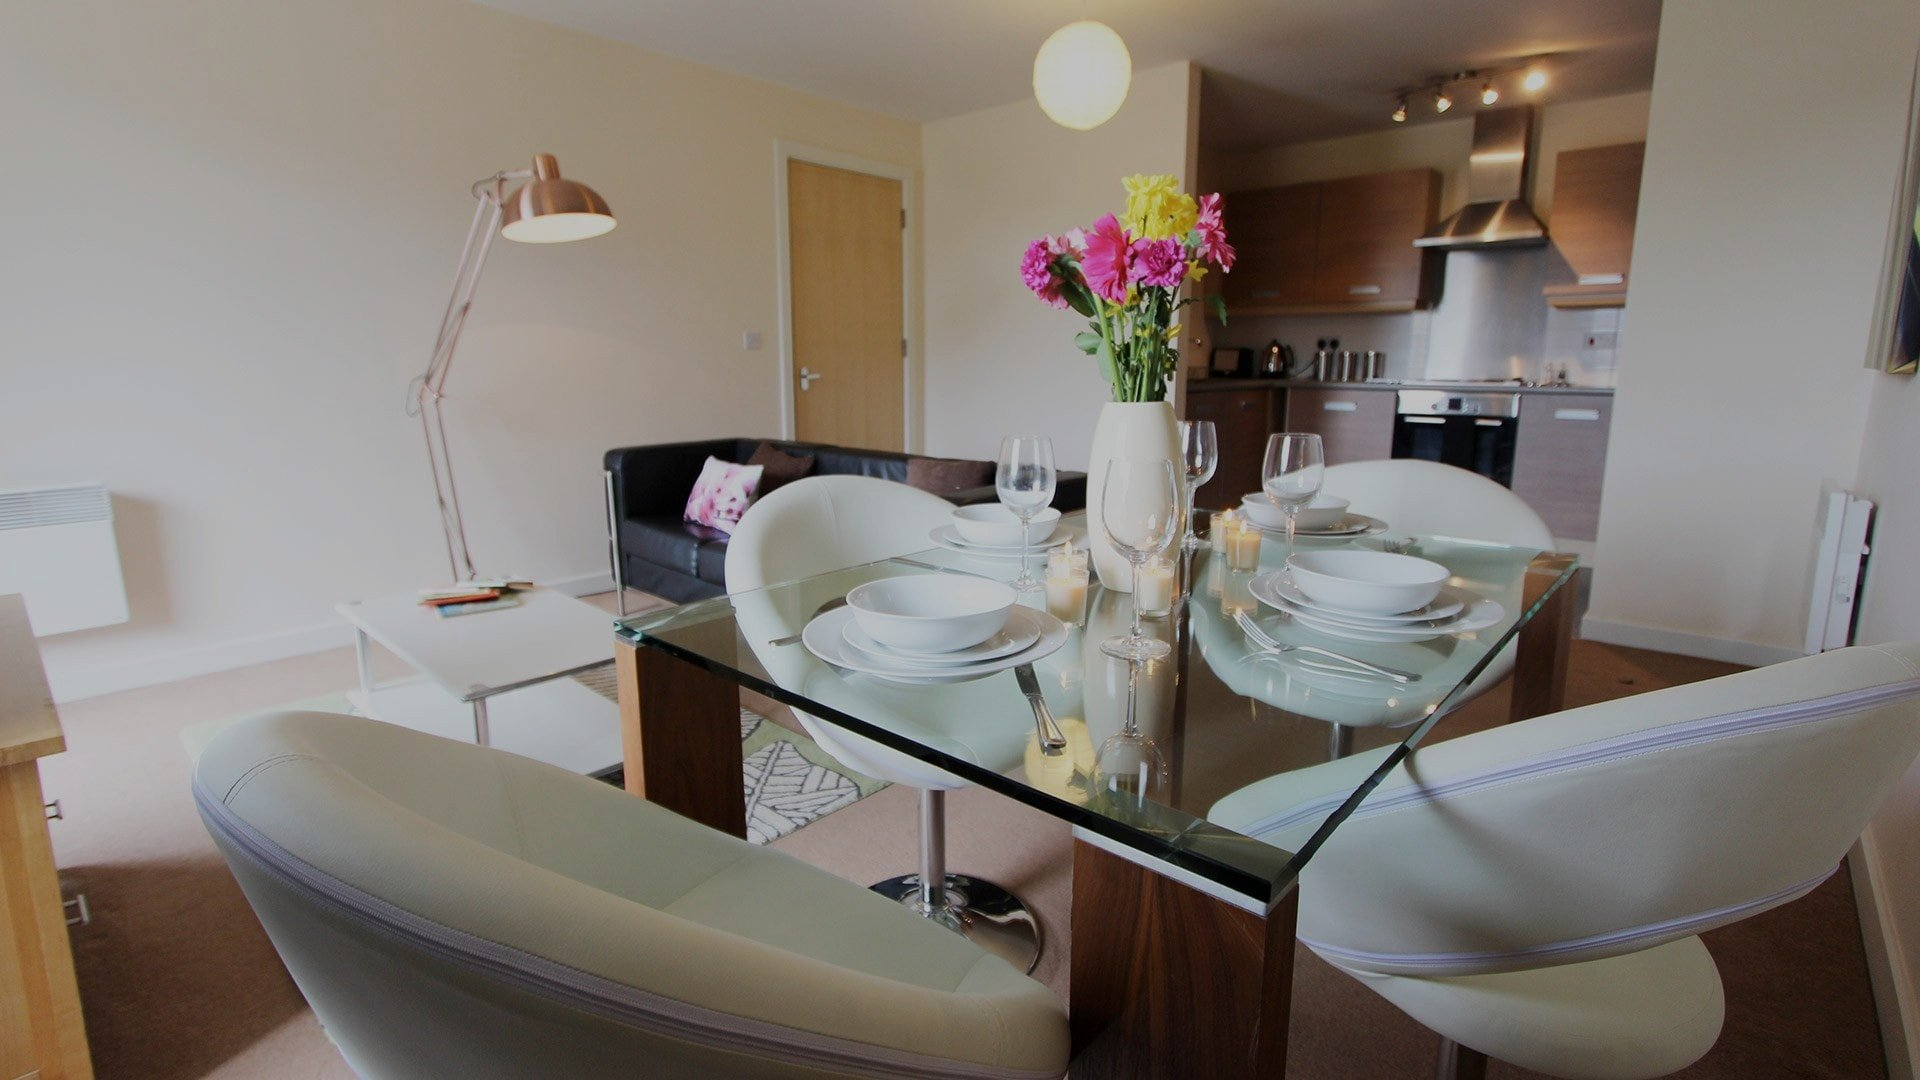 The Triangle - two bedroom luxury apartment in Cambridge by Signet Apartments.